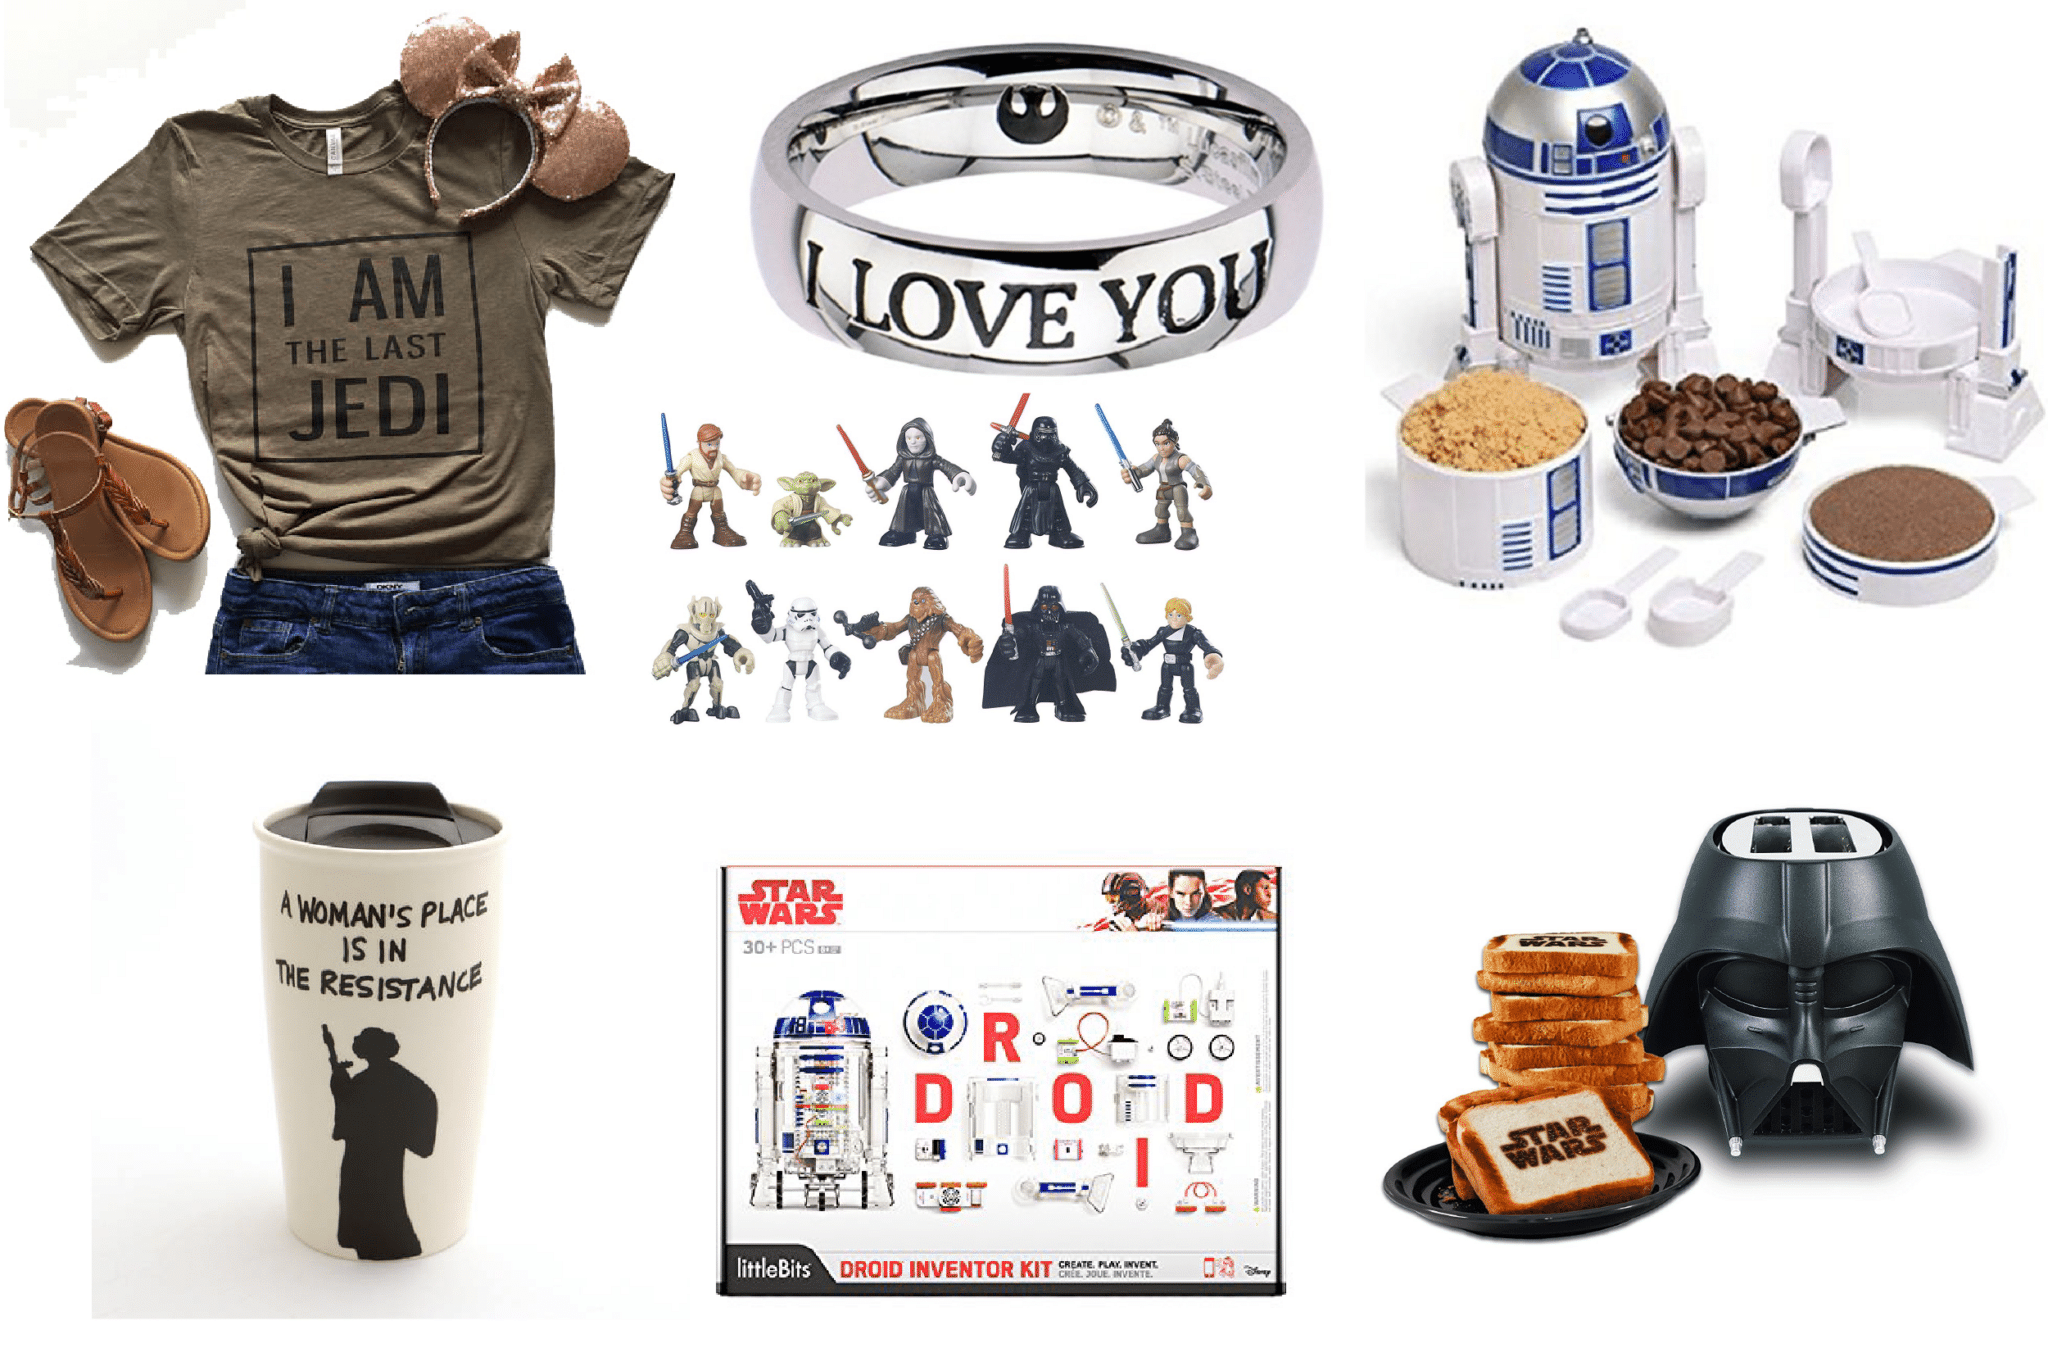 Star Wars gift ideas for him, her, and more